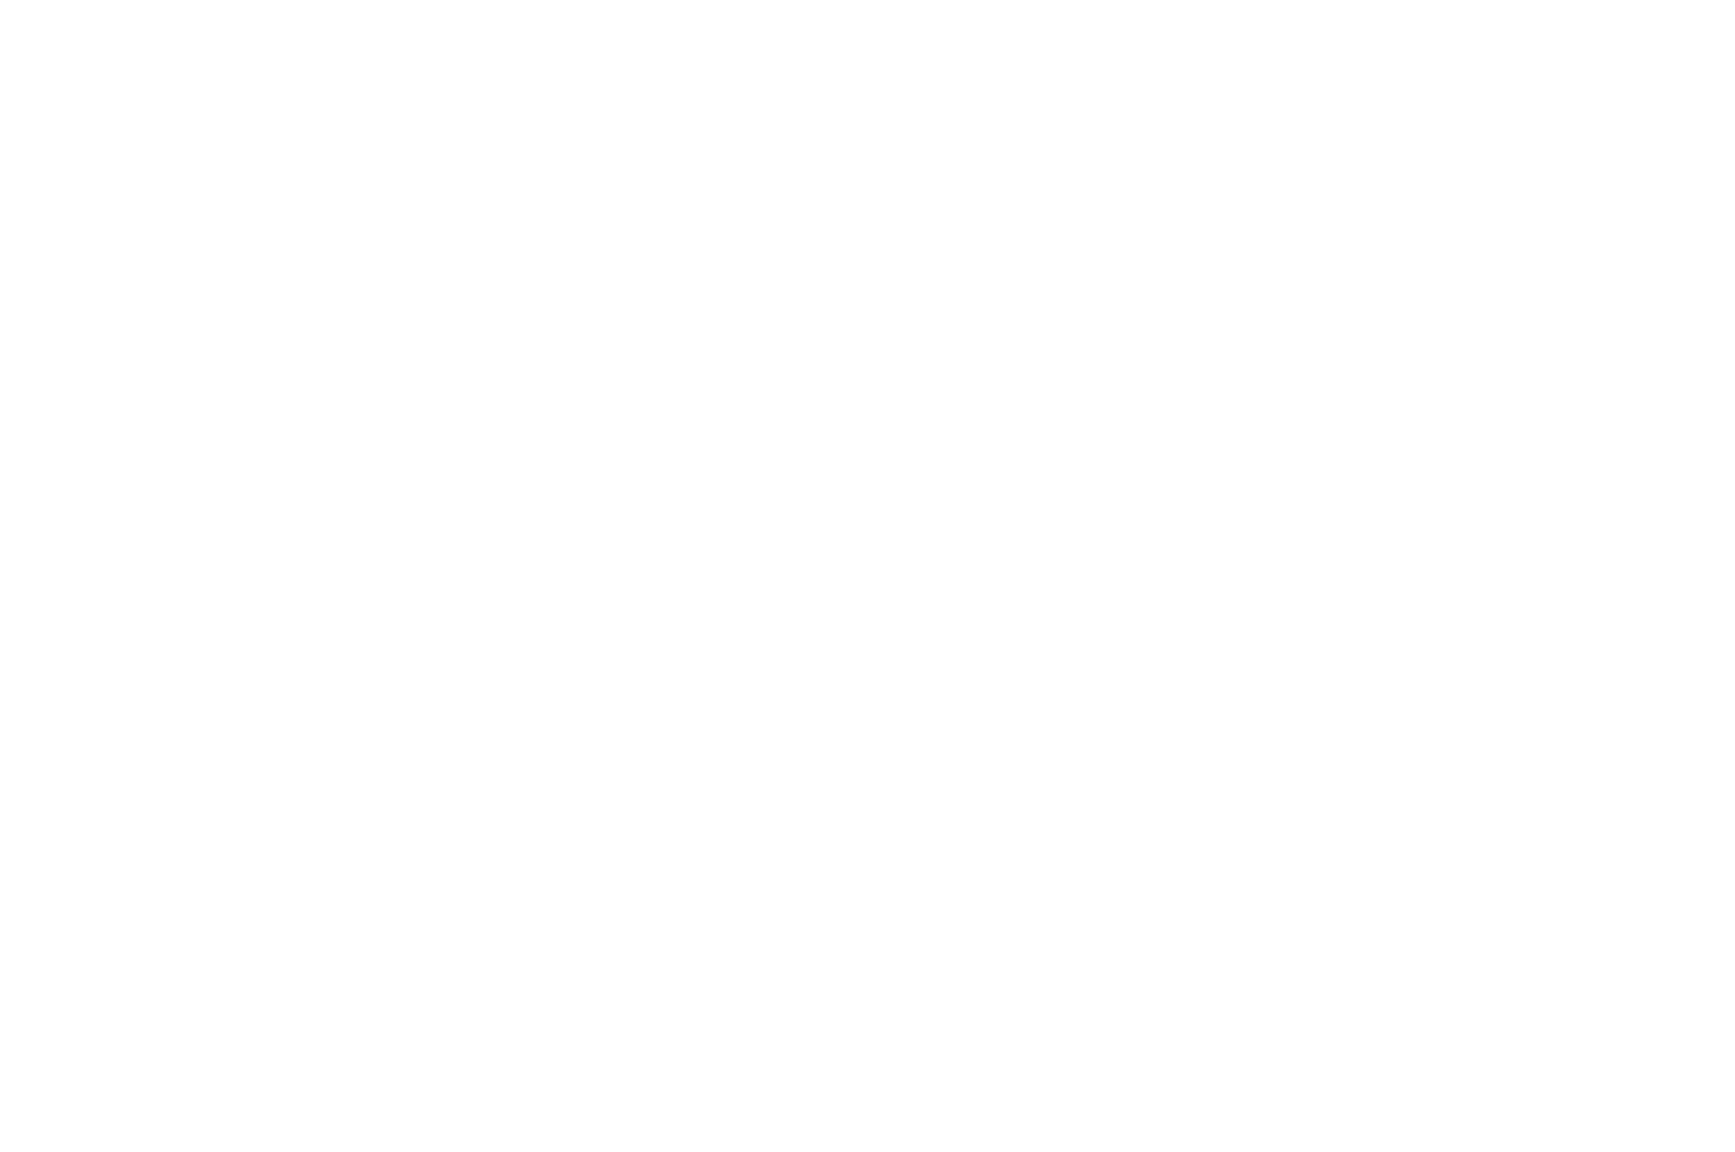 OFFICIAL SELECTION - Sunscreen Film Festival - 2019.png